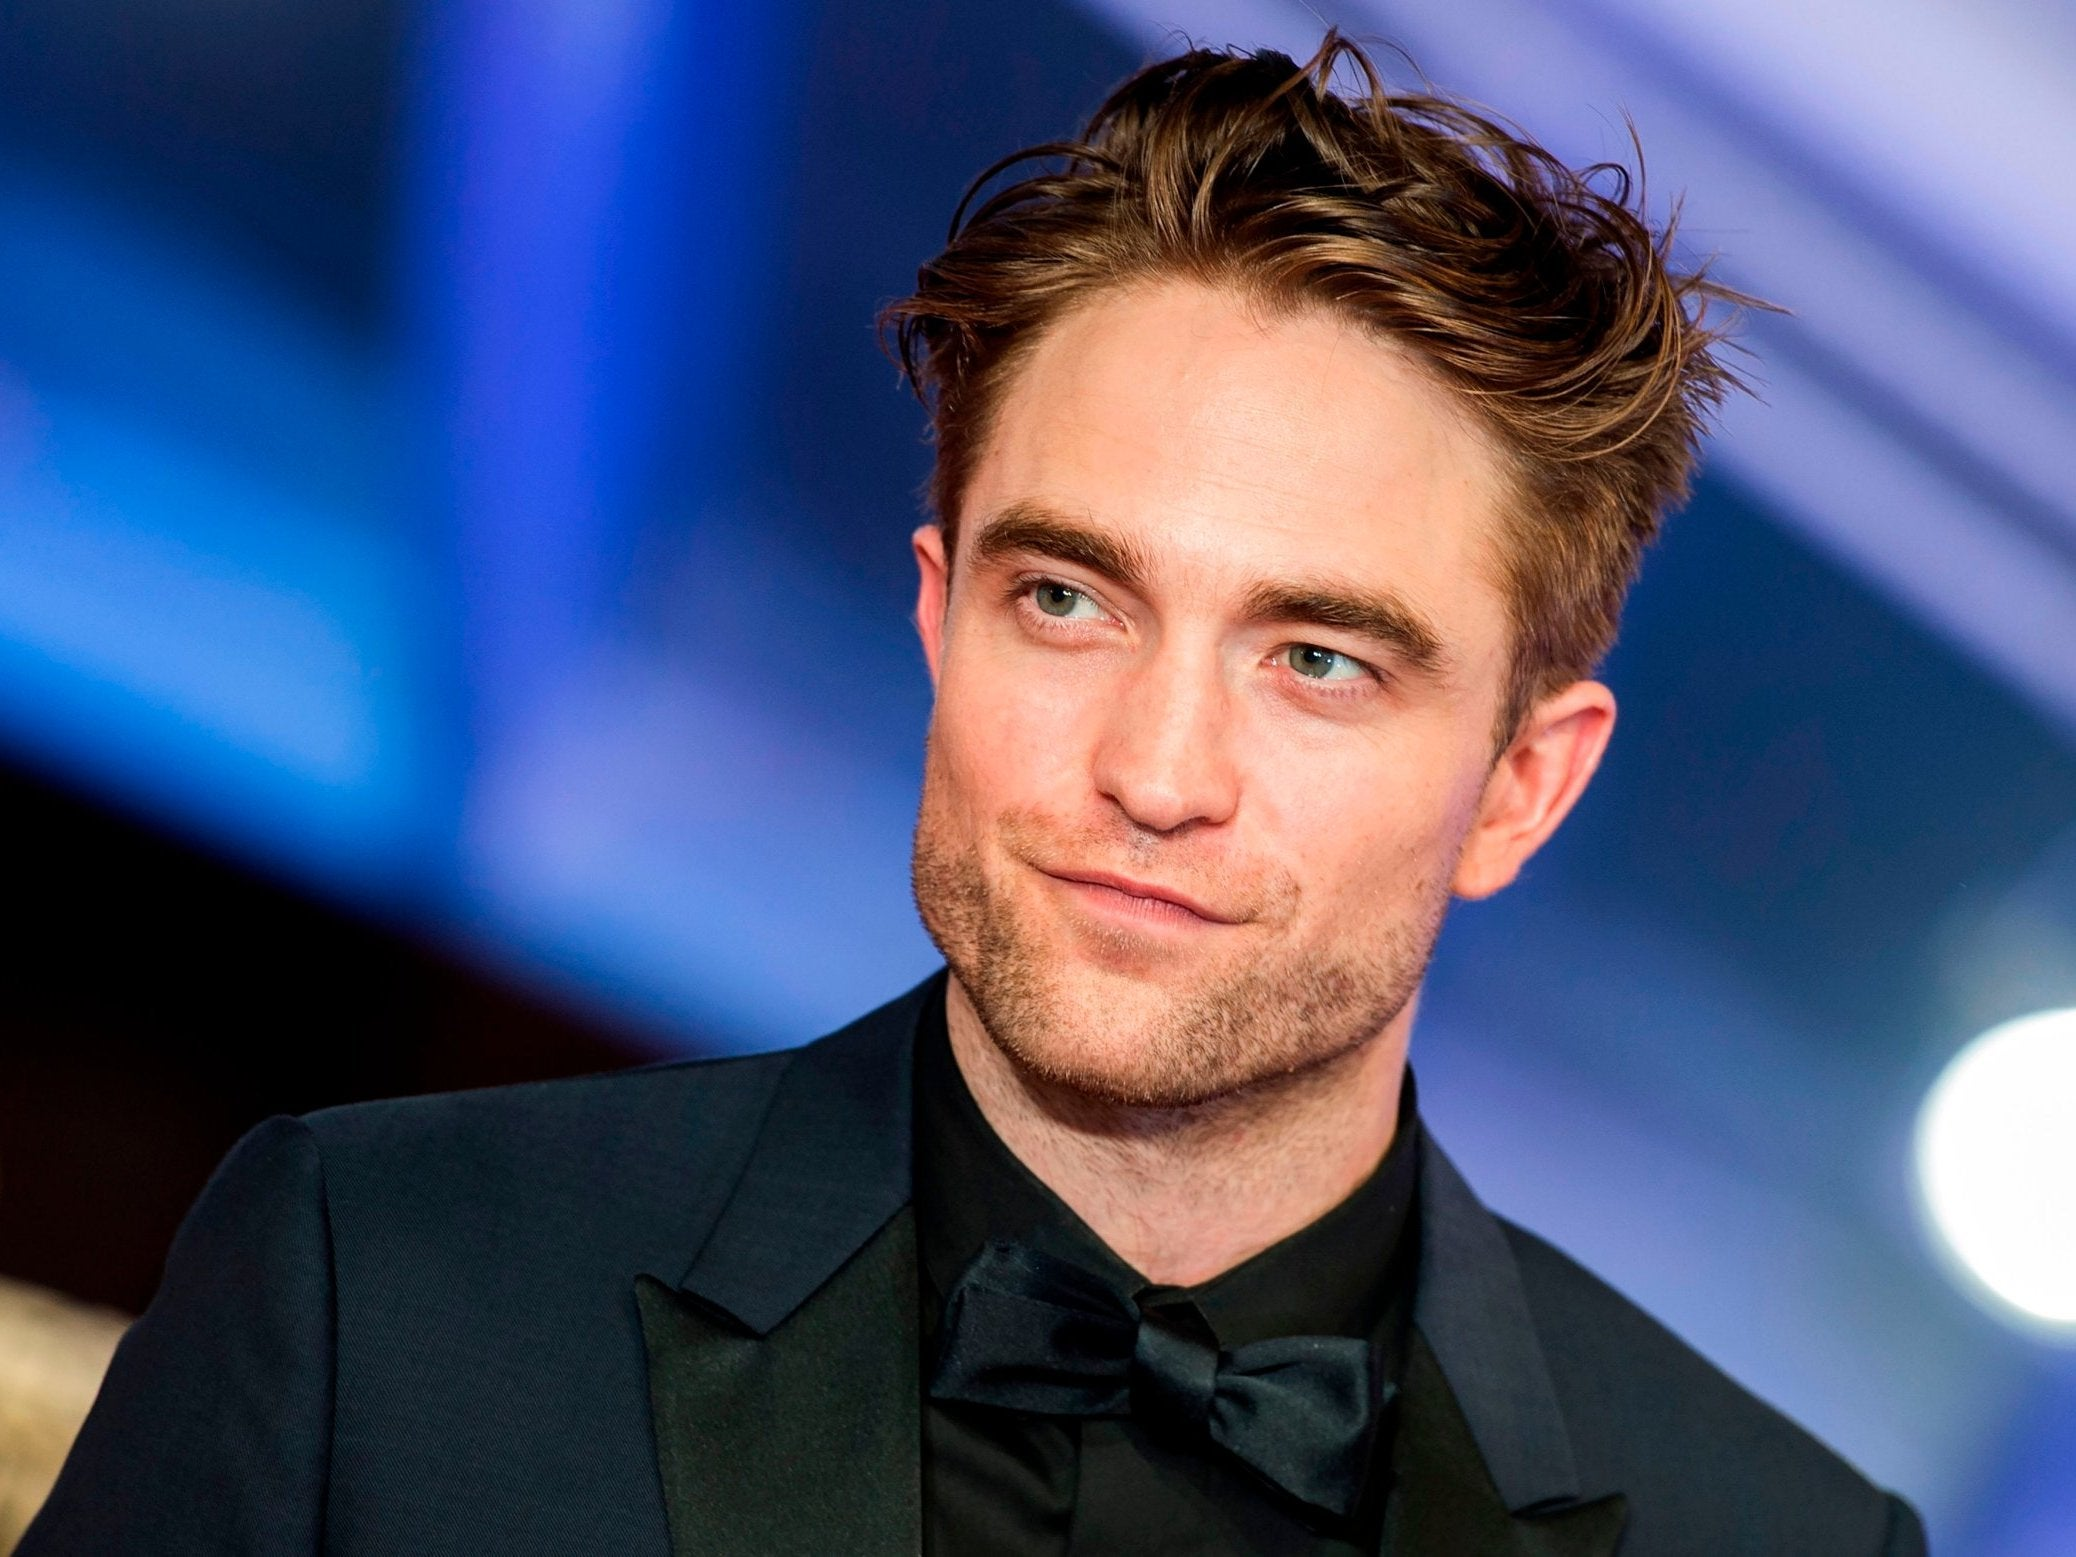 Kristen Stewart says Robert Pattinson is 'the only guy' who could play Batman